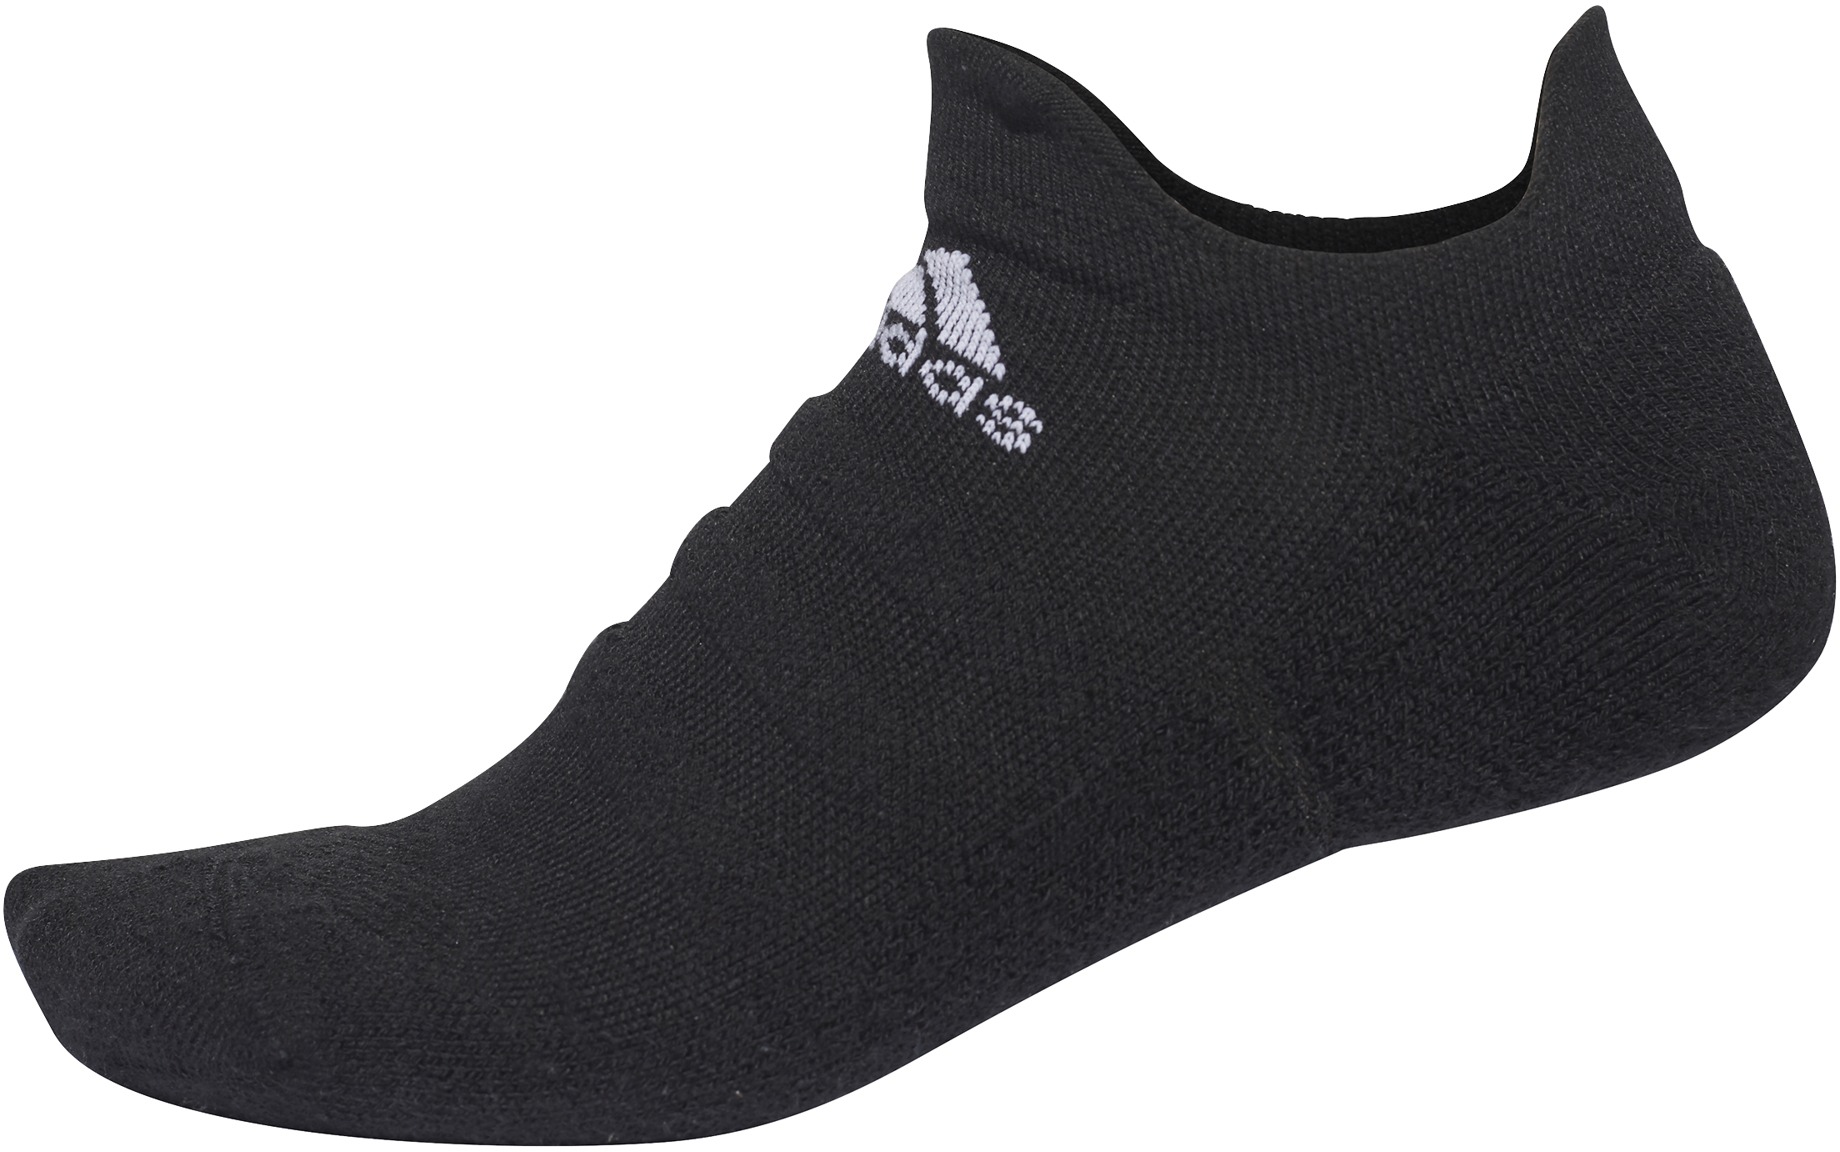 adidas Alphaskin No-Show Lightweight Cush Socks | Socks